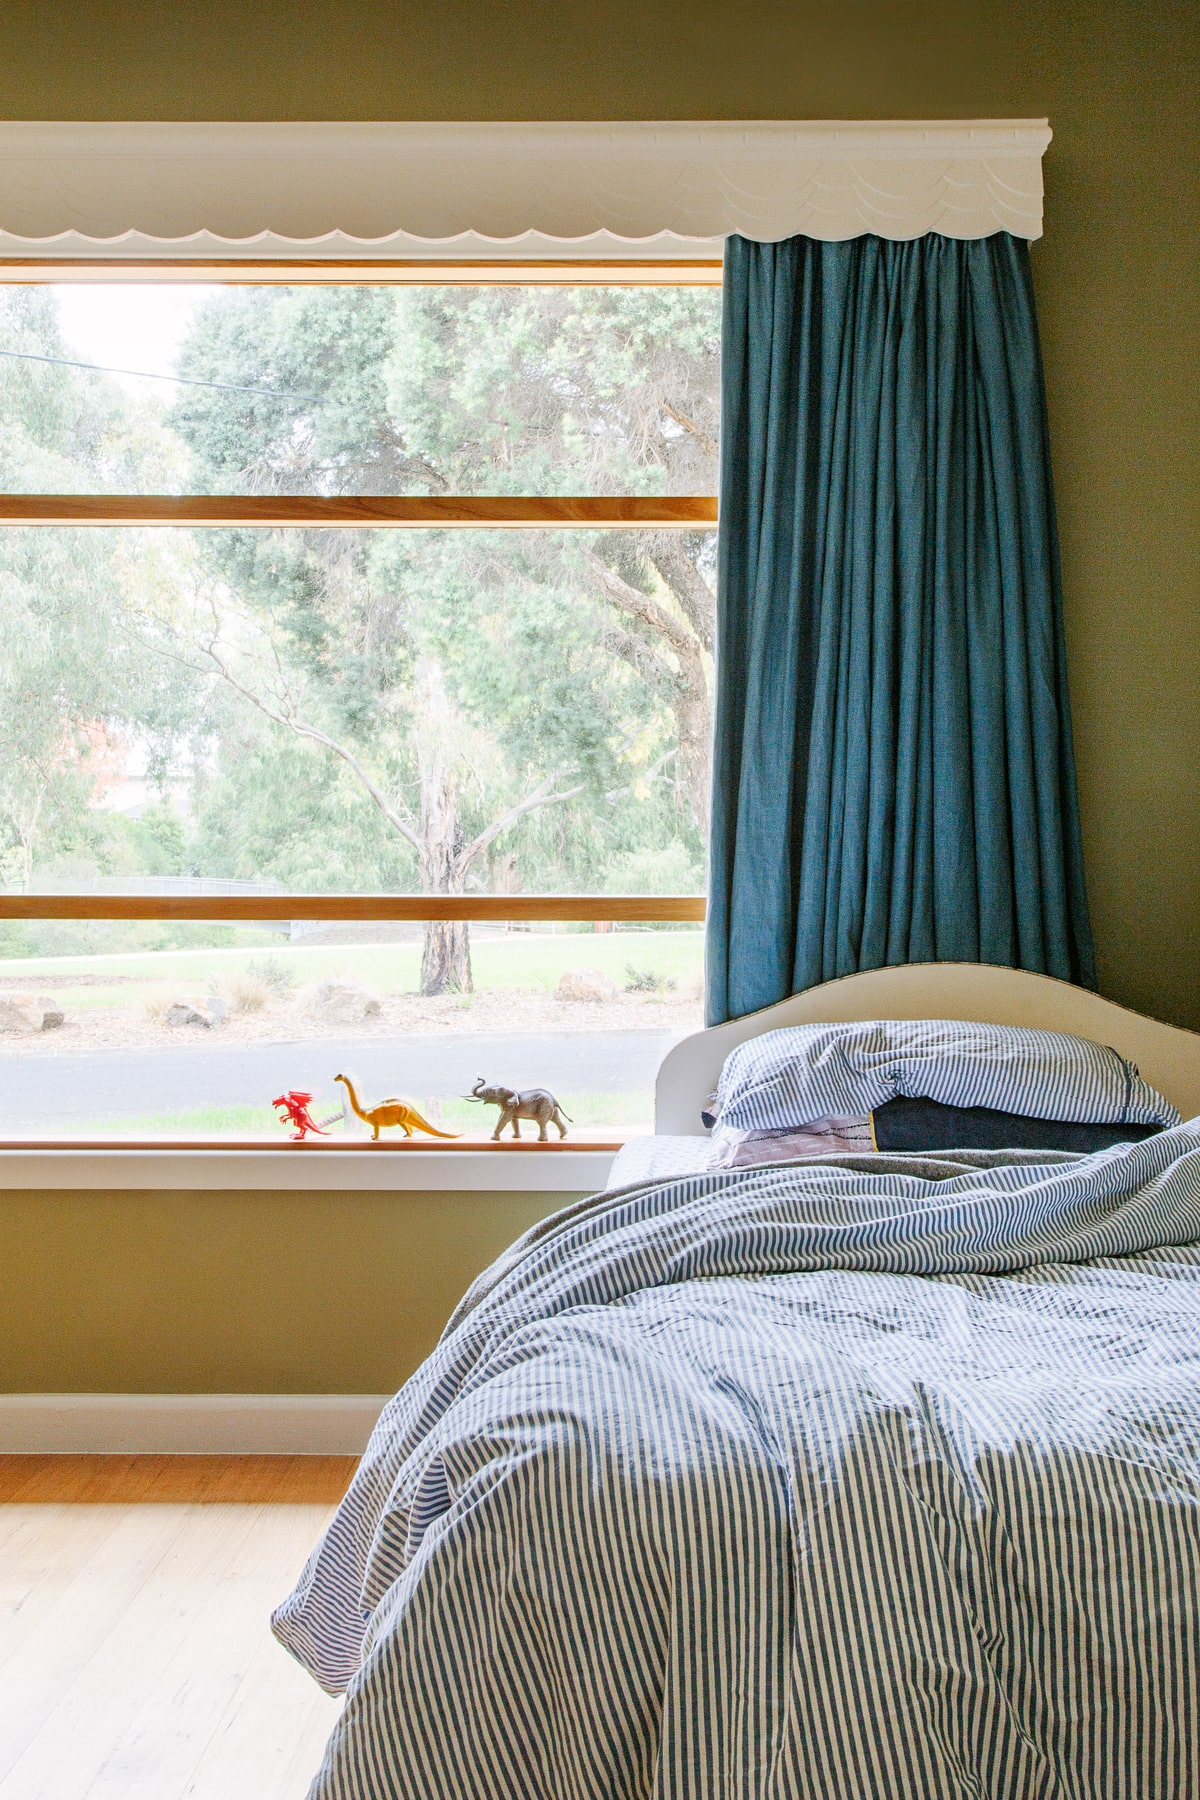 Yarravillia Project By Brave New Eco Local Residential Australian Interior Design Projects Yarraville,melbourne Image 38